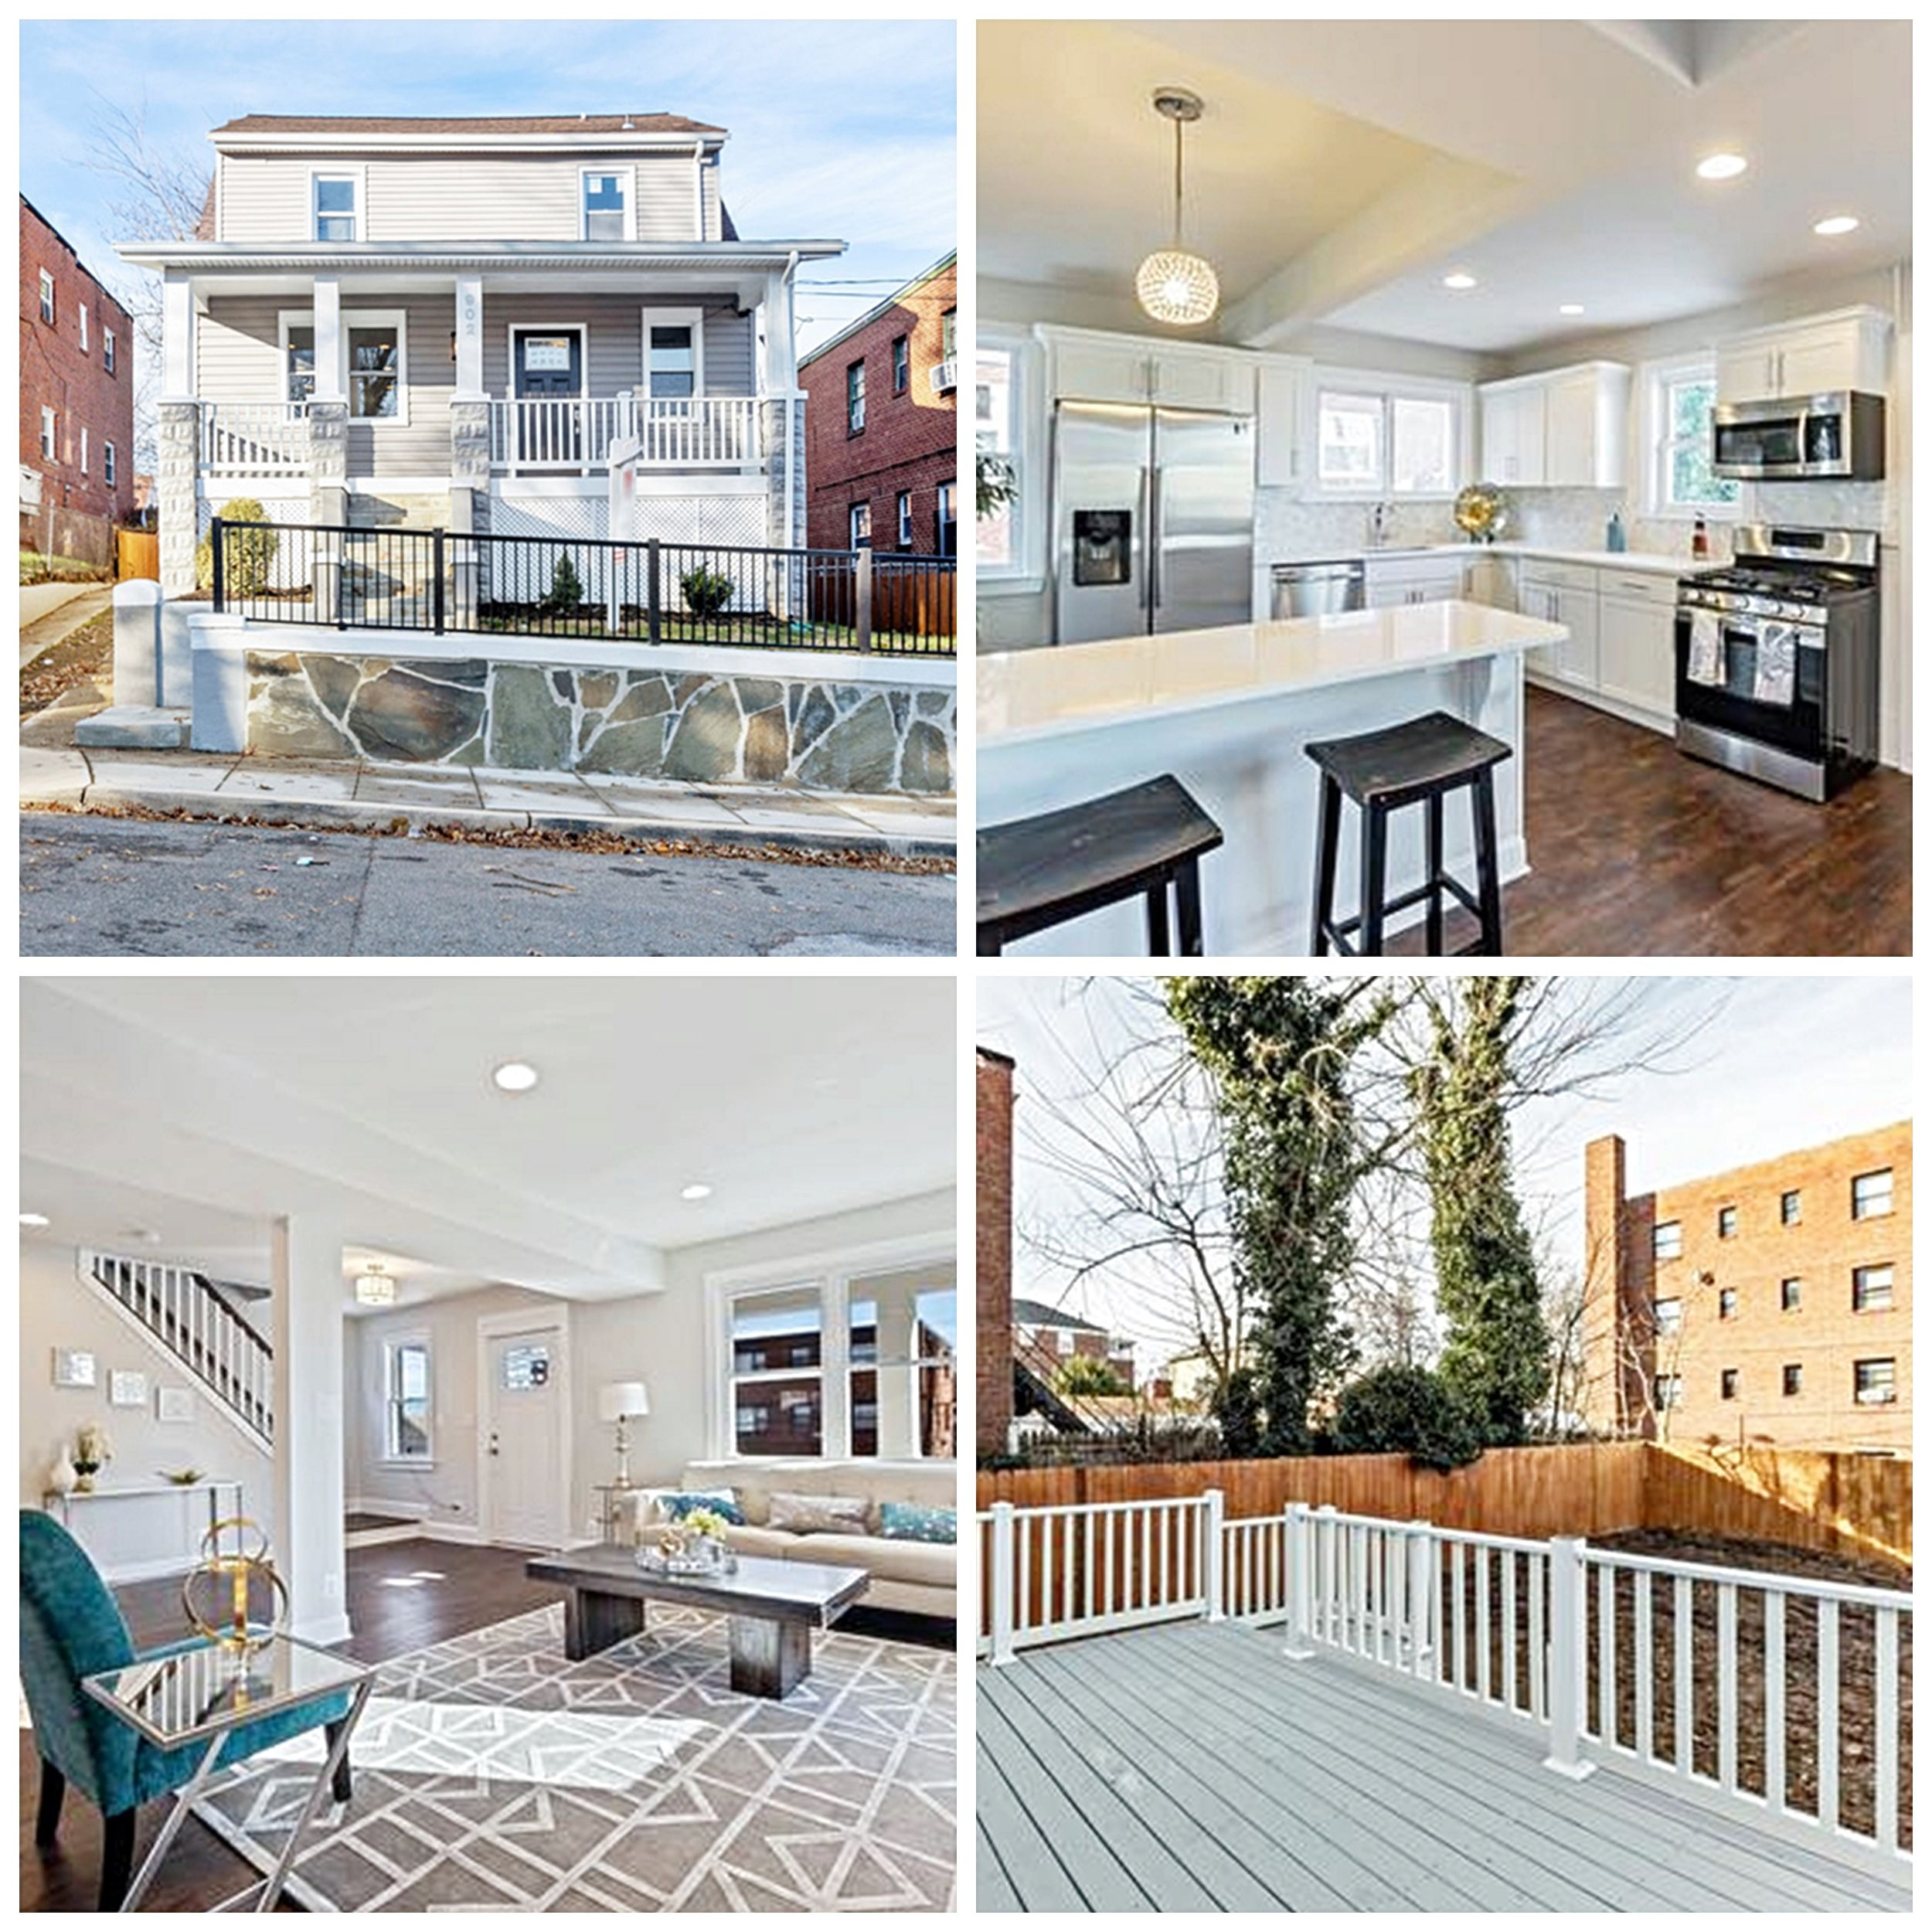 Cazanewlisting Openhouse 12 22 Sun 2 4pm Welcome To This Stunning Totally Renovated Single Family Home For More Information House Styles Home Home Buying